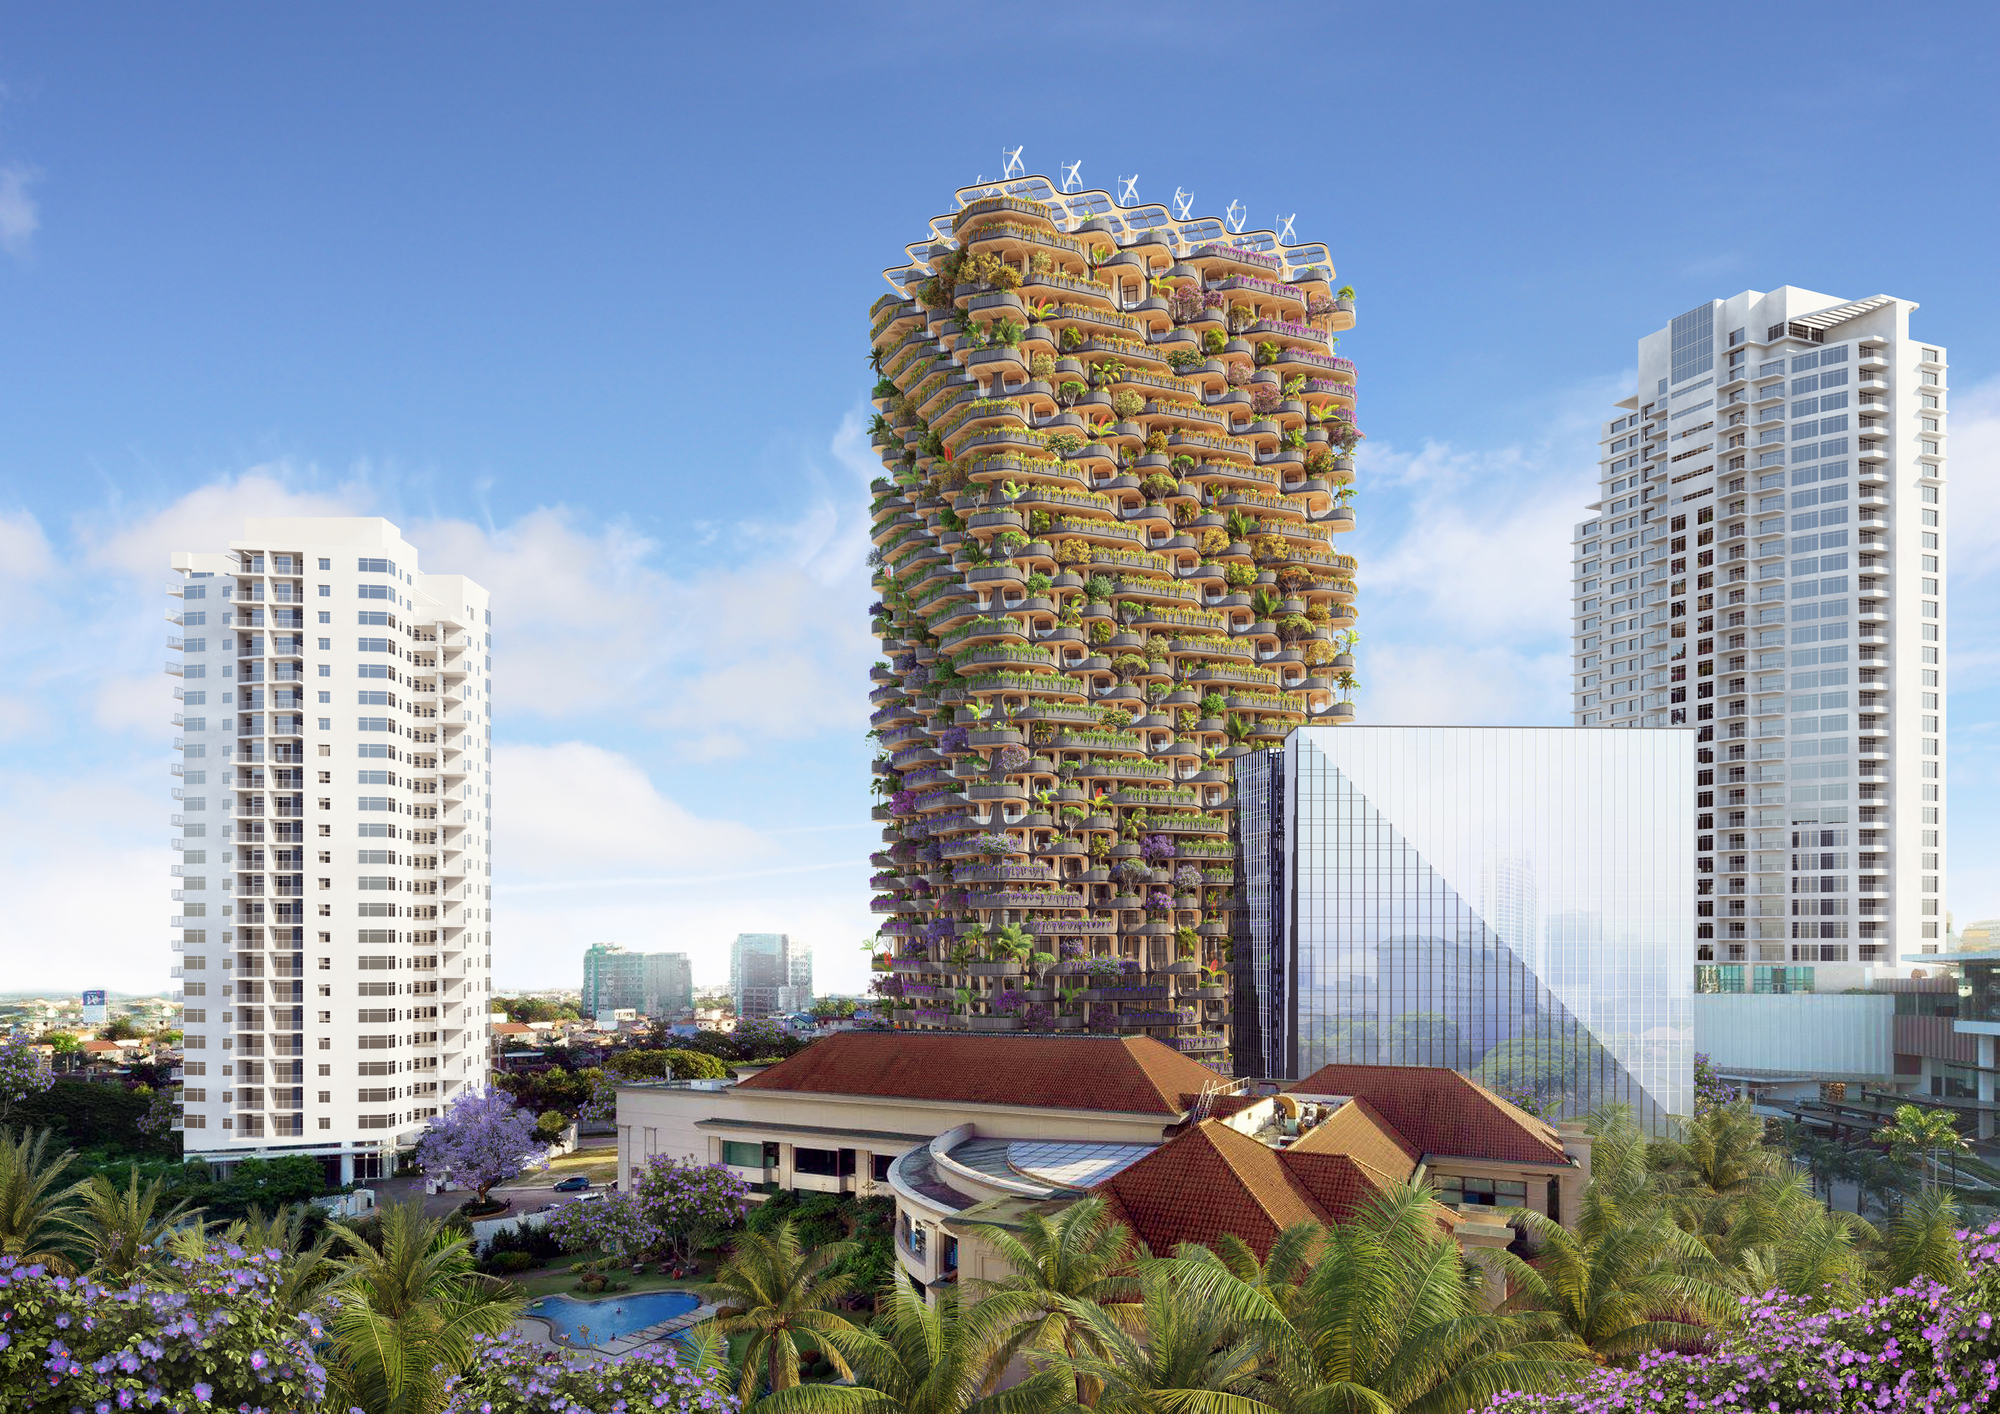 Vincent Callebaut Designs a Modular Mass Timber Tower on the Island of Cebu, in the Philippines